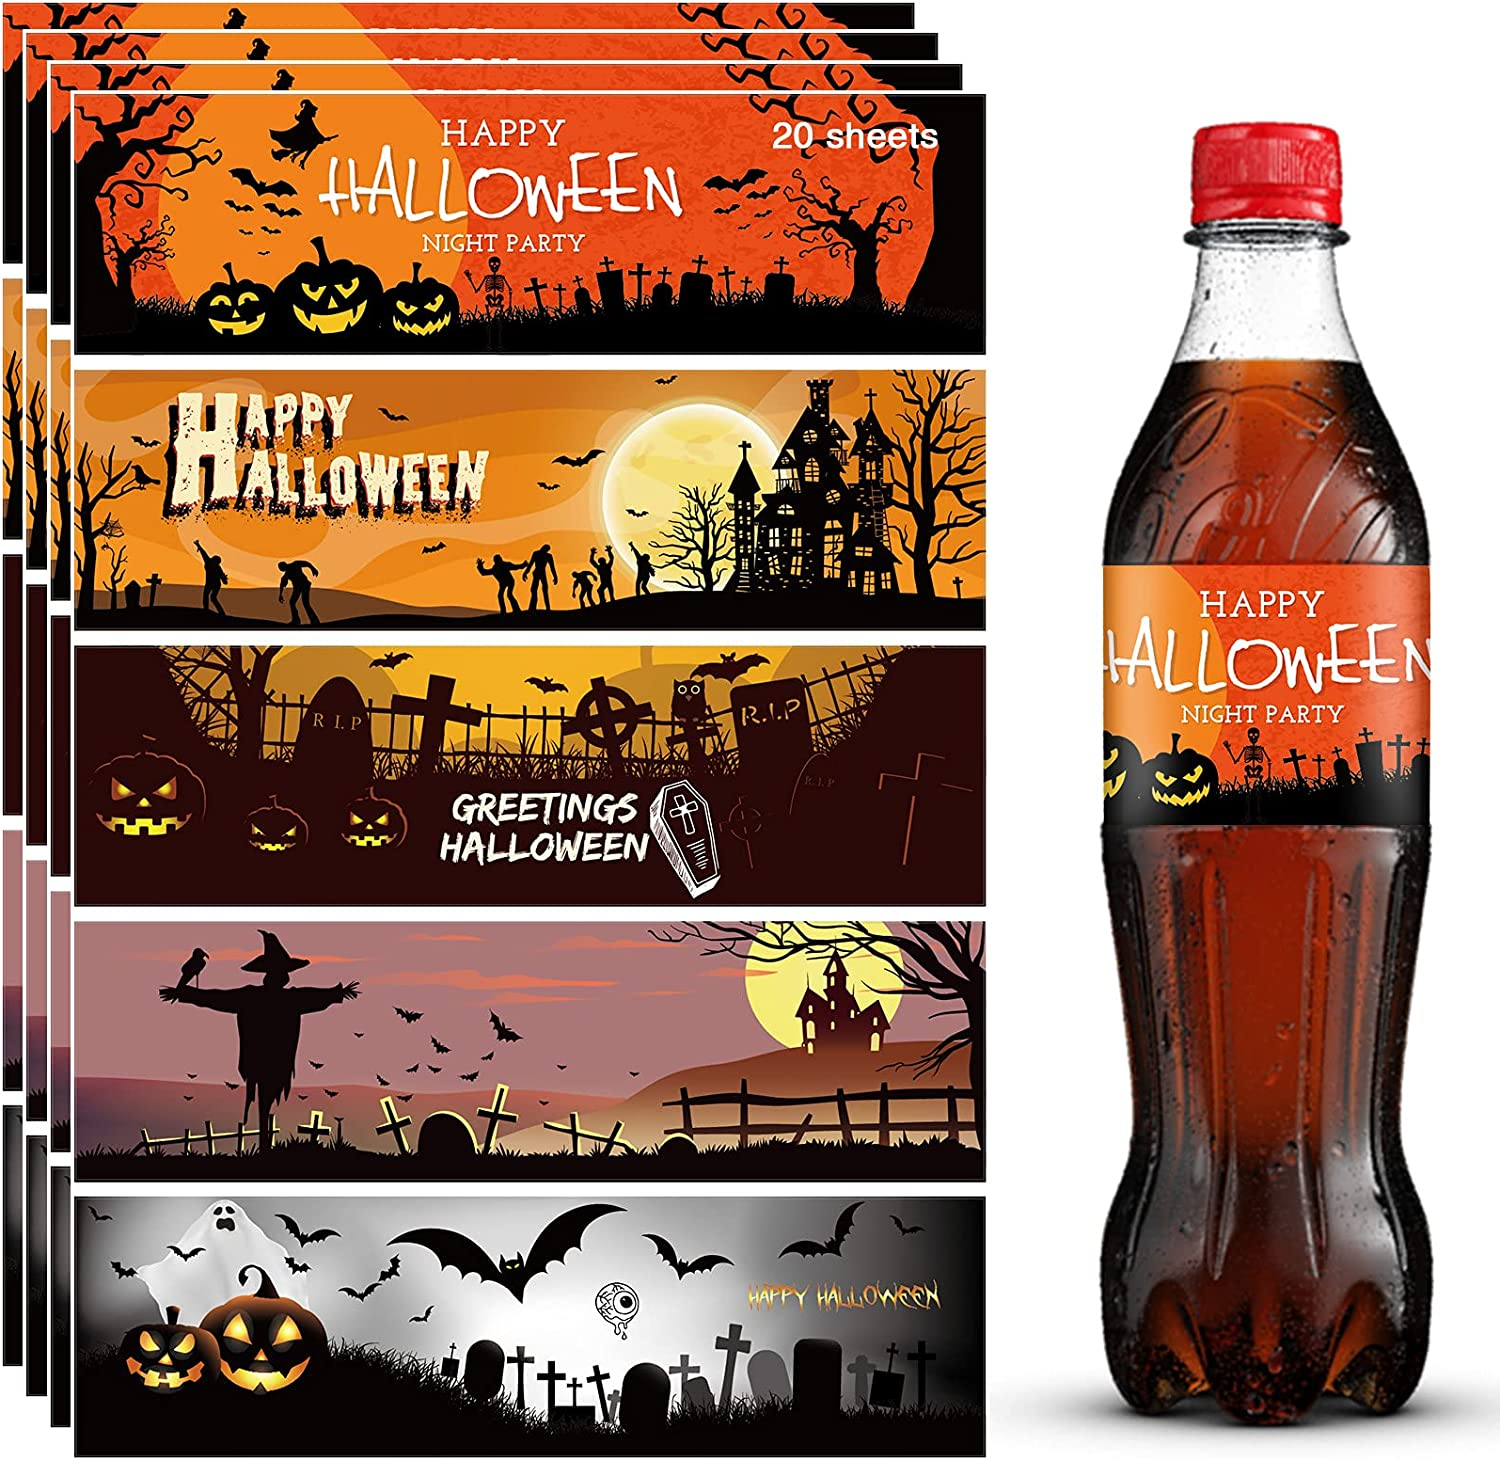 100Pcs Halloween Water Bottle Labels Stickers, Halloween Party Decorations Halloween Party Favors Waterproof Water Bottle Wrappers Wine Drink Jars Bottles Labels Decor for Gifts Photo Props (5 Style)